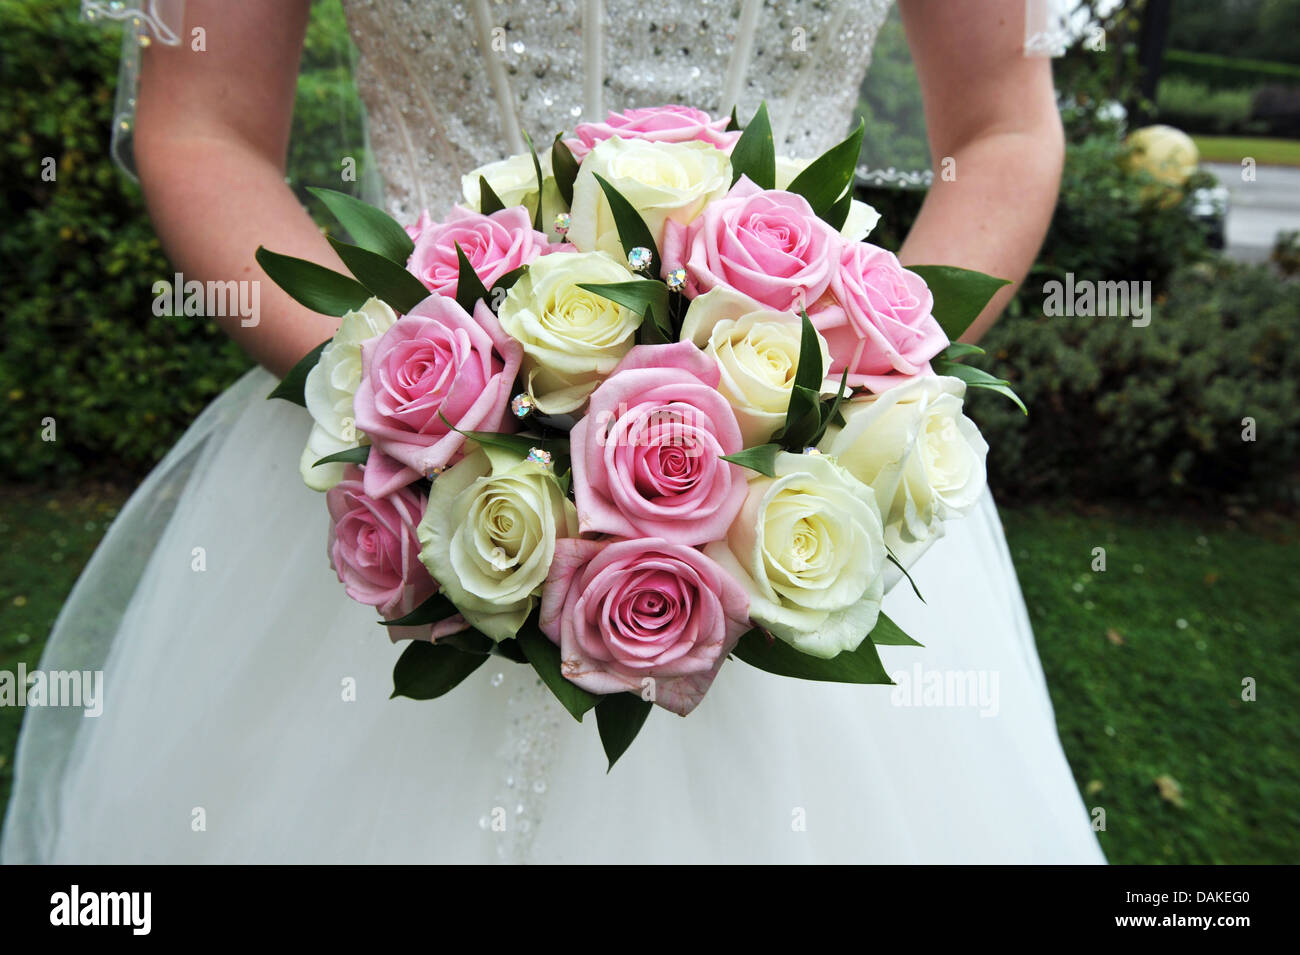 A Bridal Bouquet Of Pink And White Roses Stock Photo 58206176 Alamy